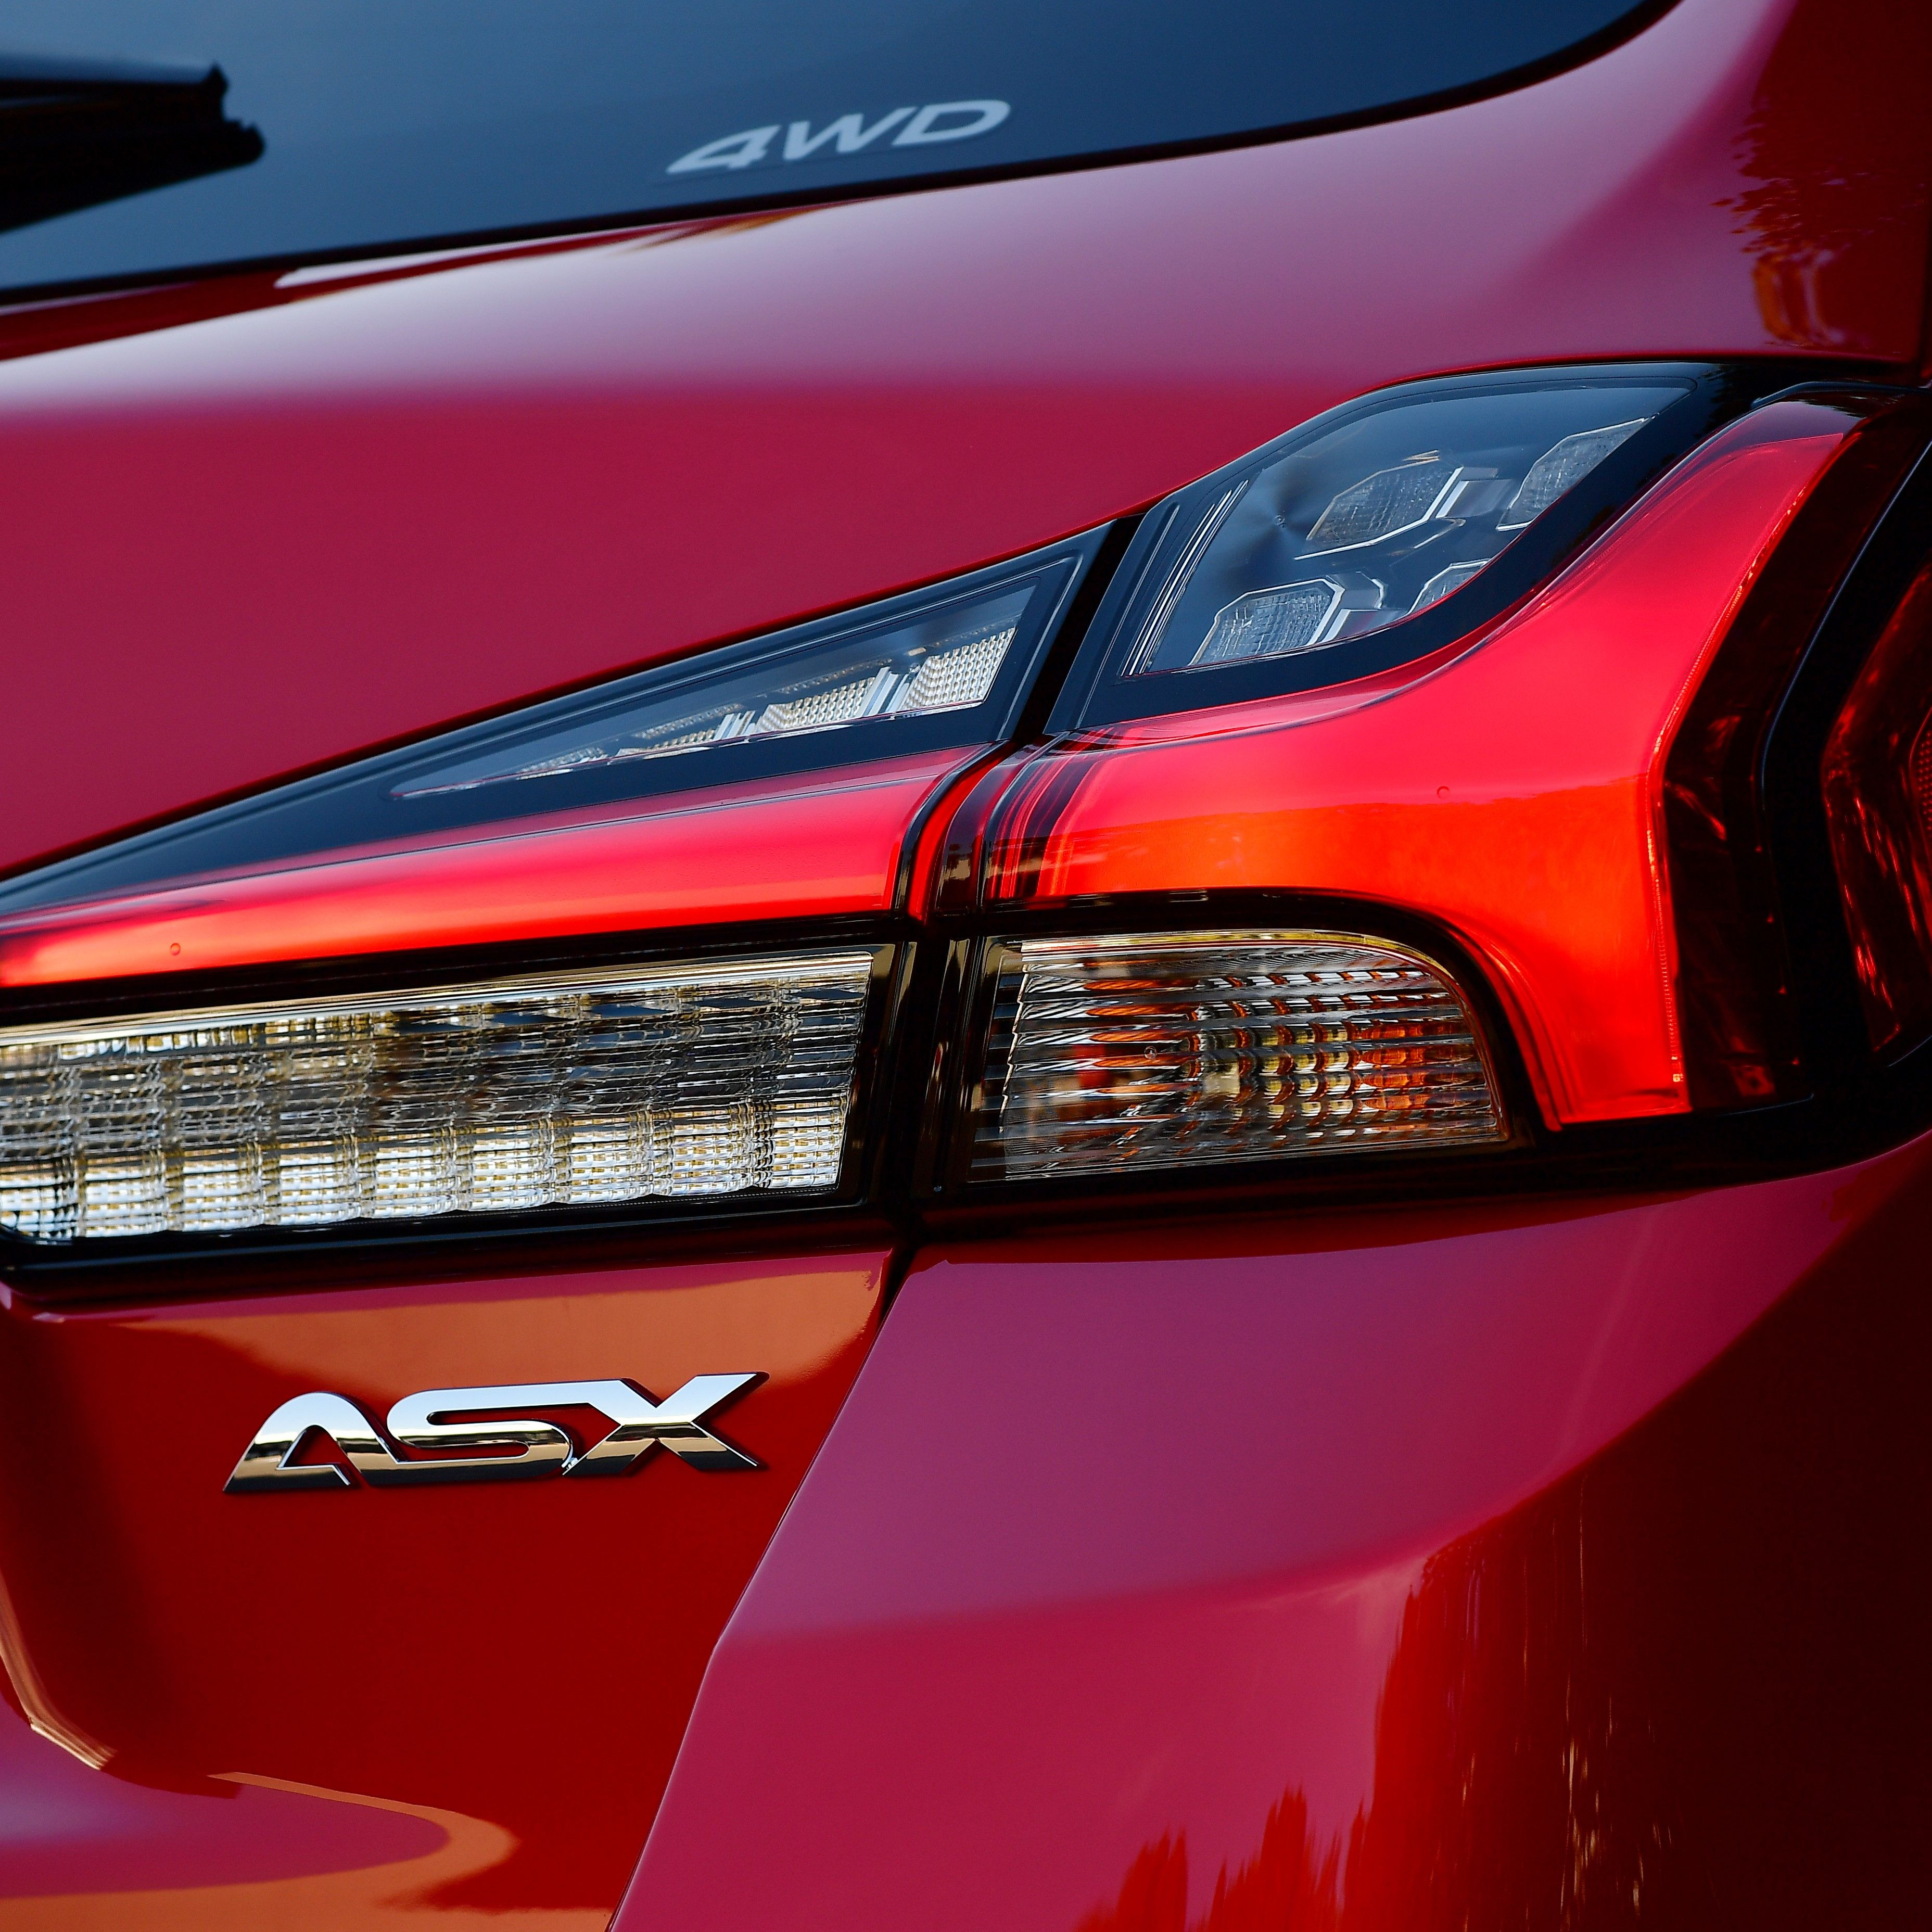 Mitsubishi Asx 4wd: The All-new #ASX Is Coming And It's Got Some Pretty Slick